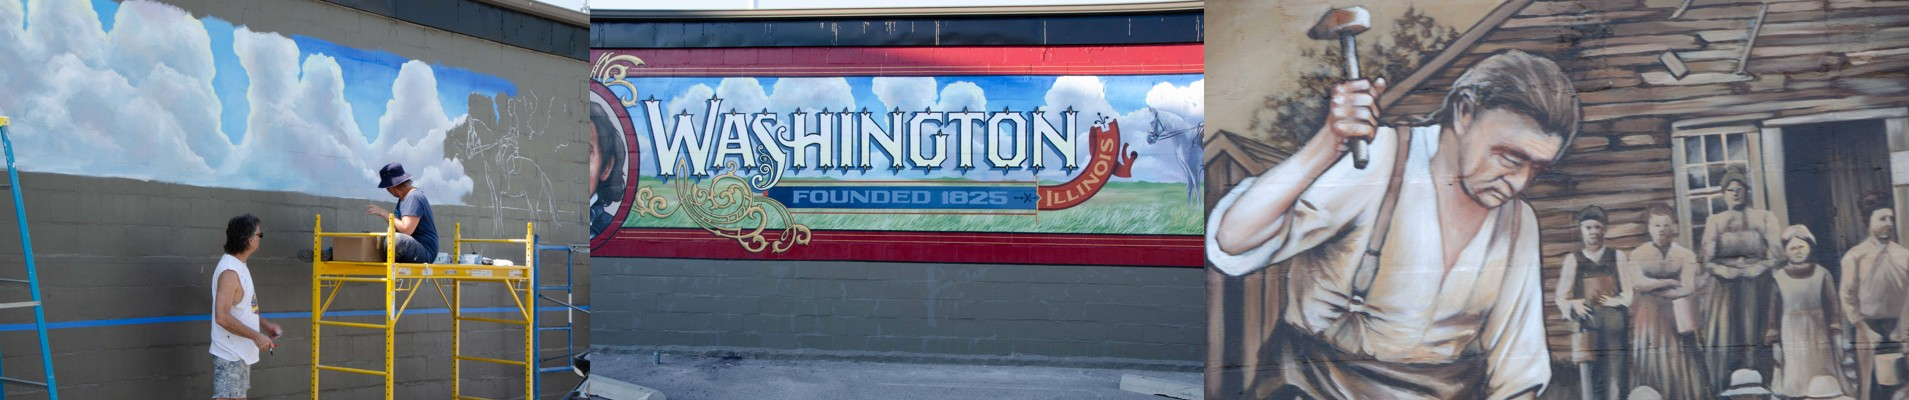 The Washington Historical Society thanks our members and the entire community for their support of the Walldogs mural, completed July 13!